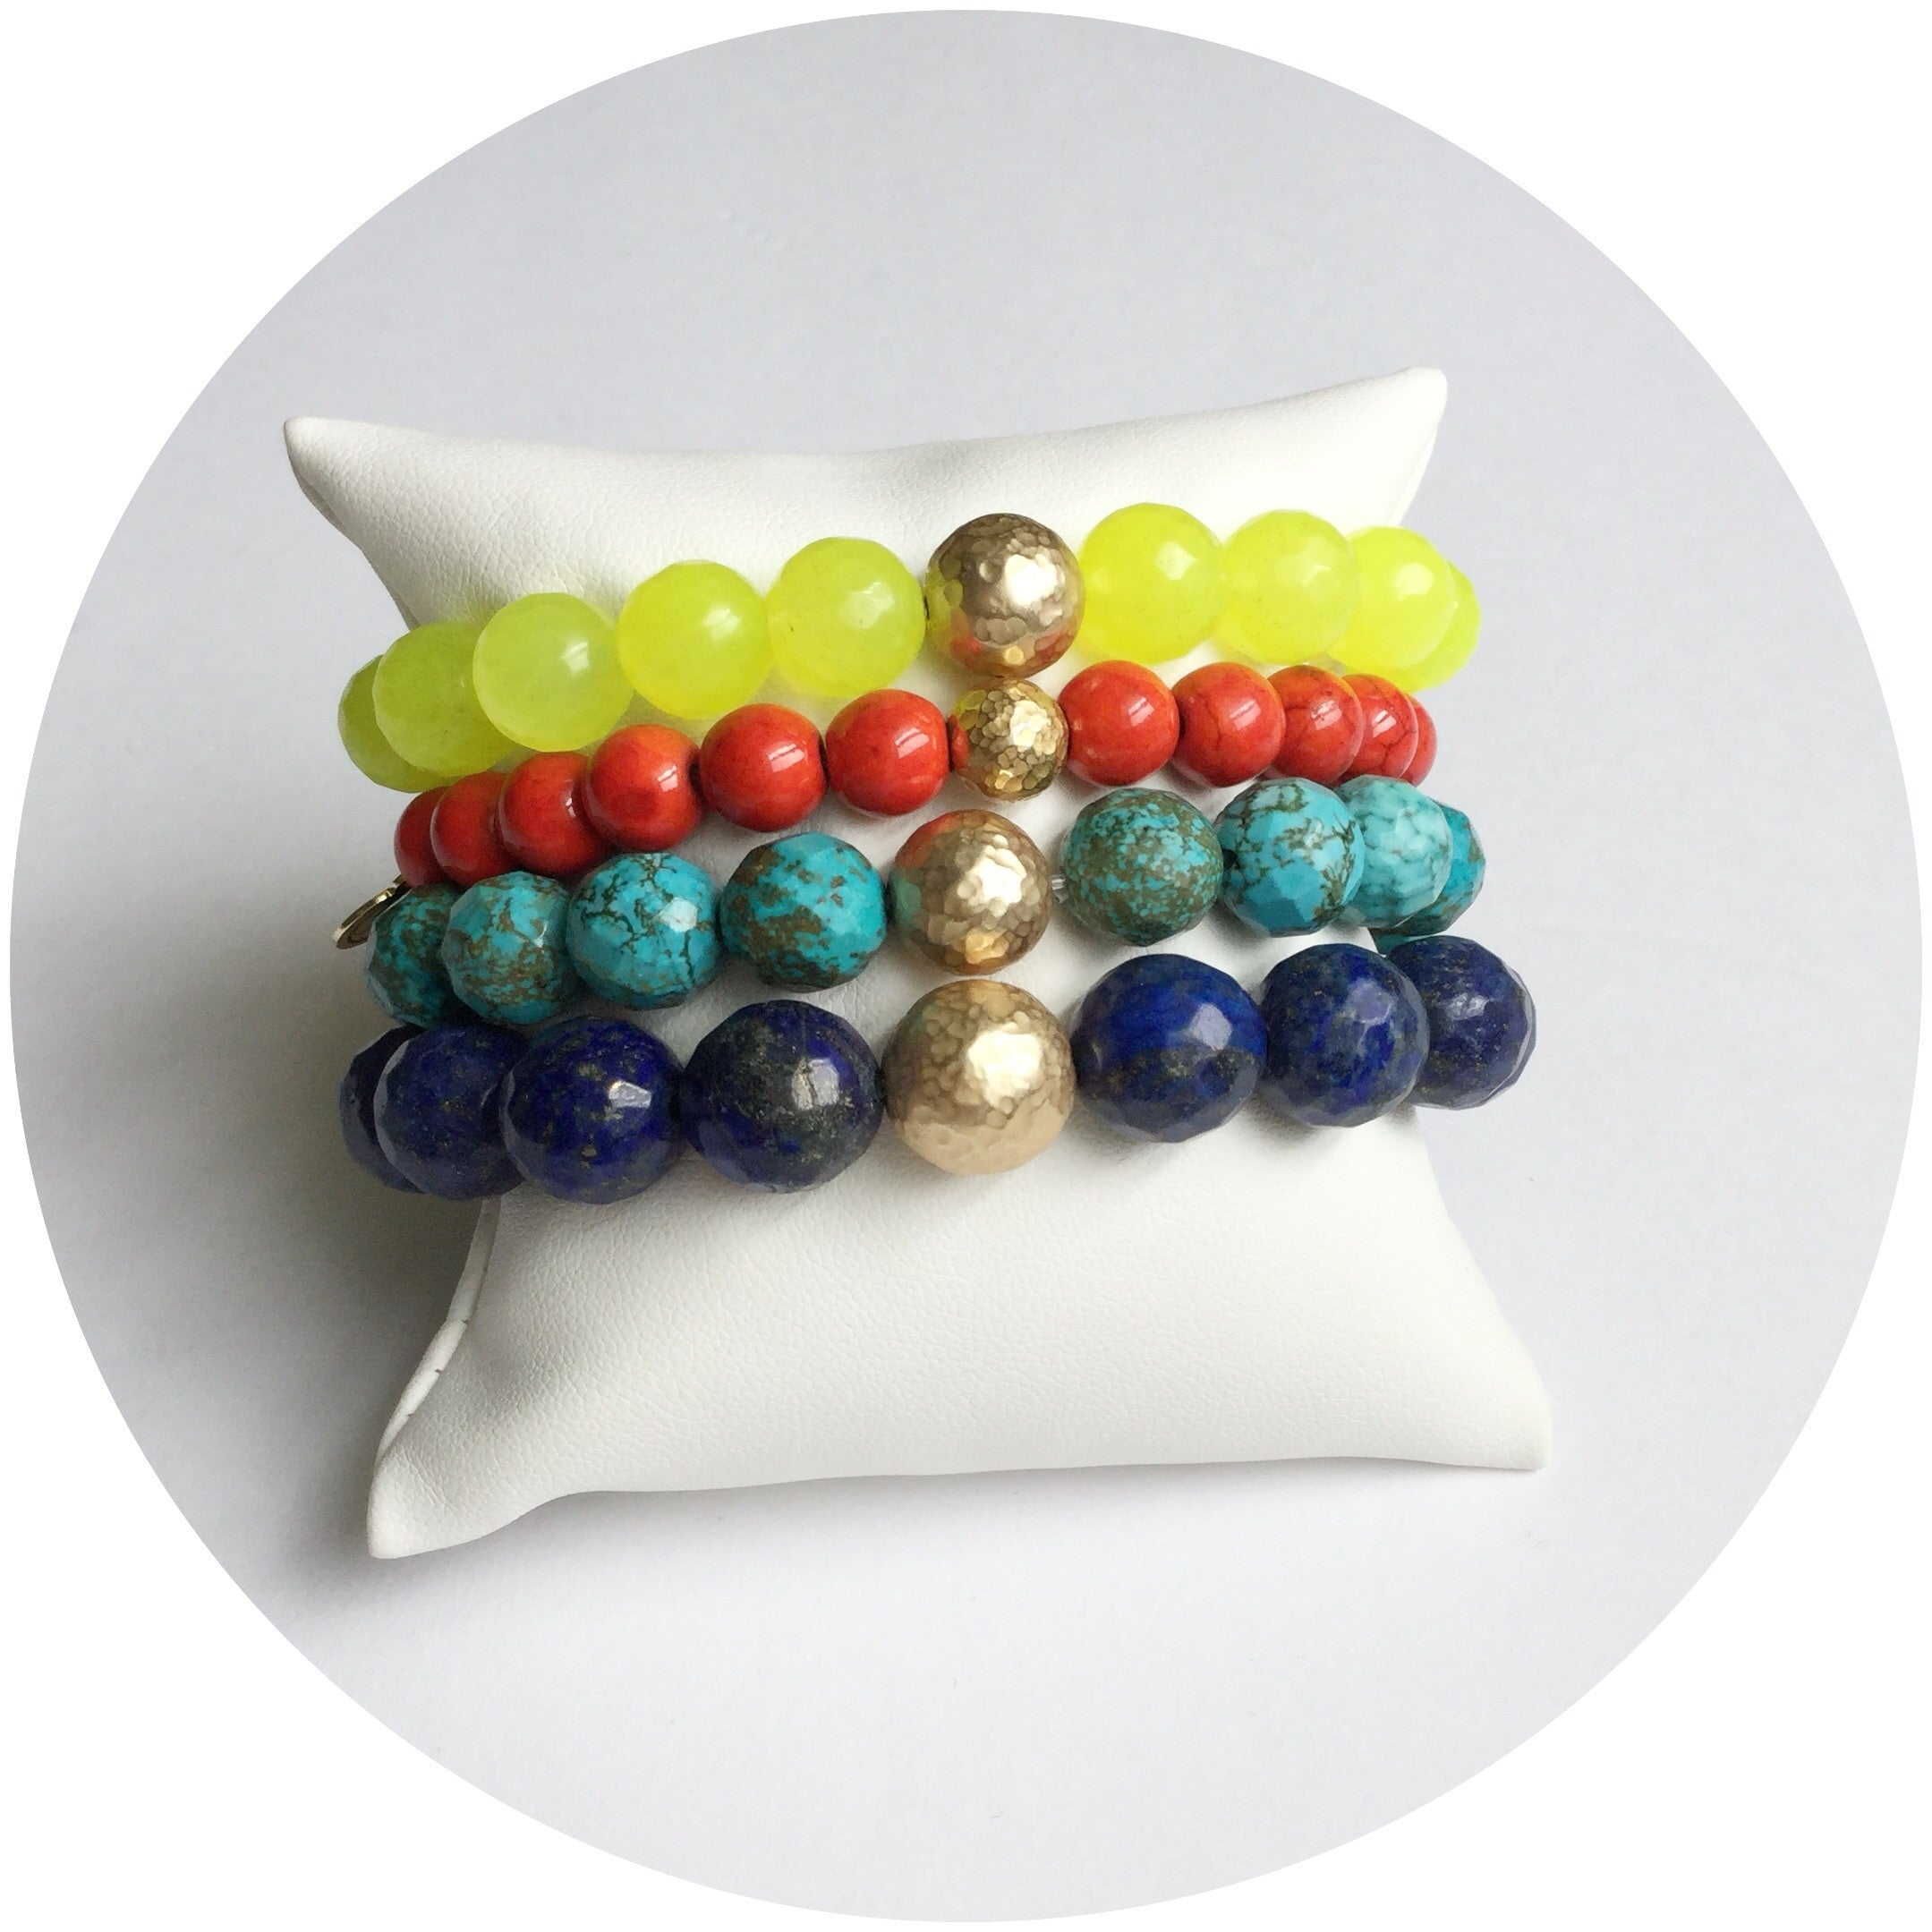 Color Galore Armparty - Oriana Lamarca LLC